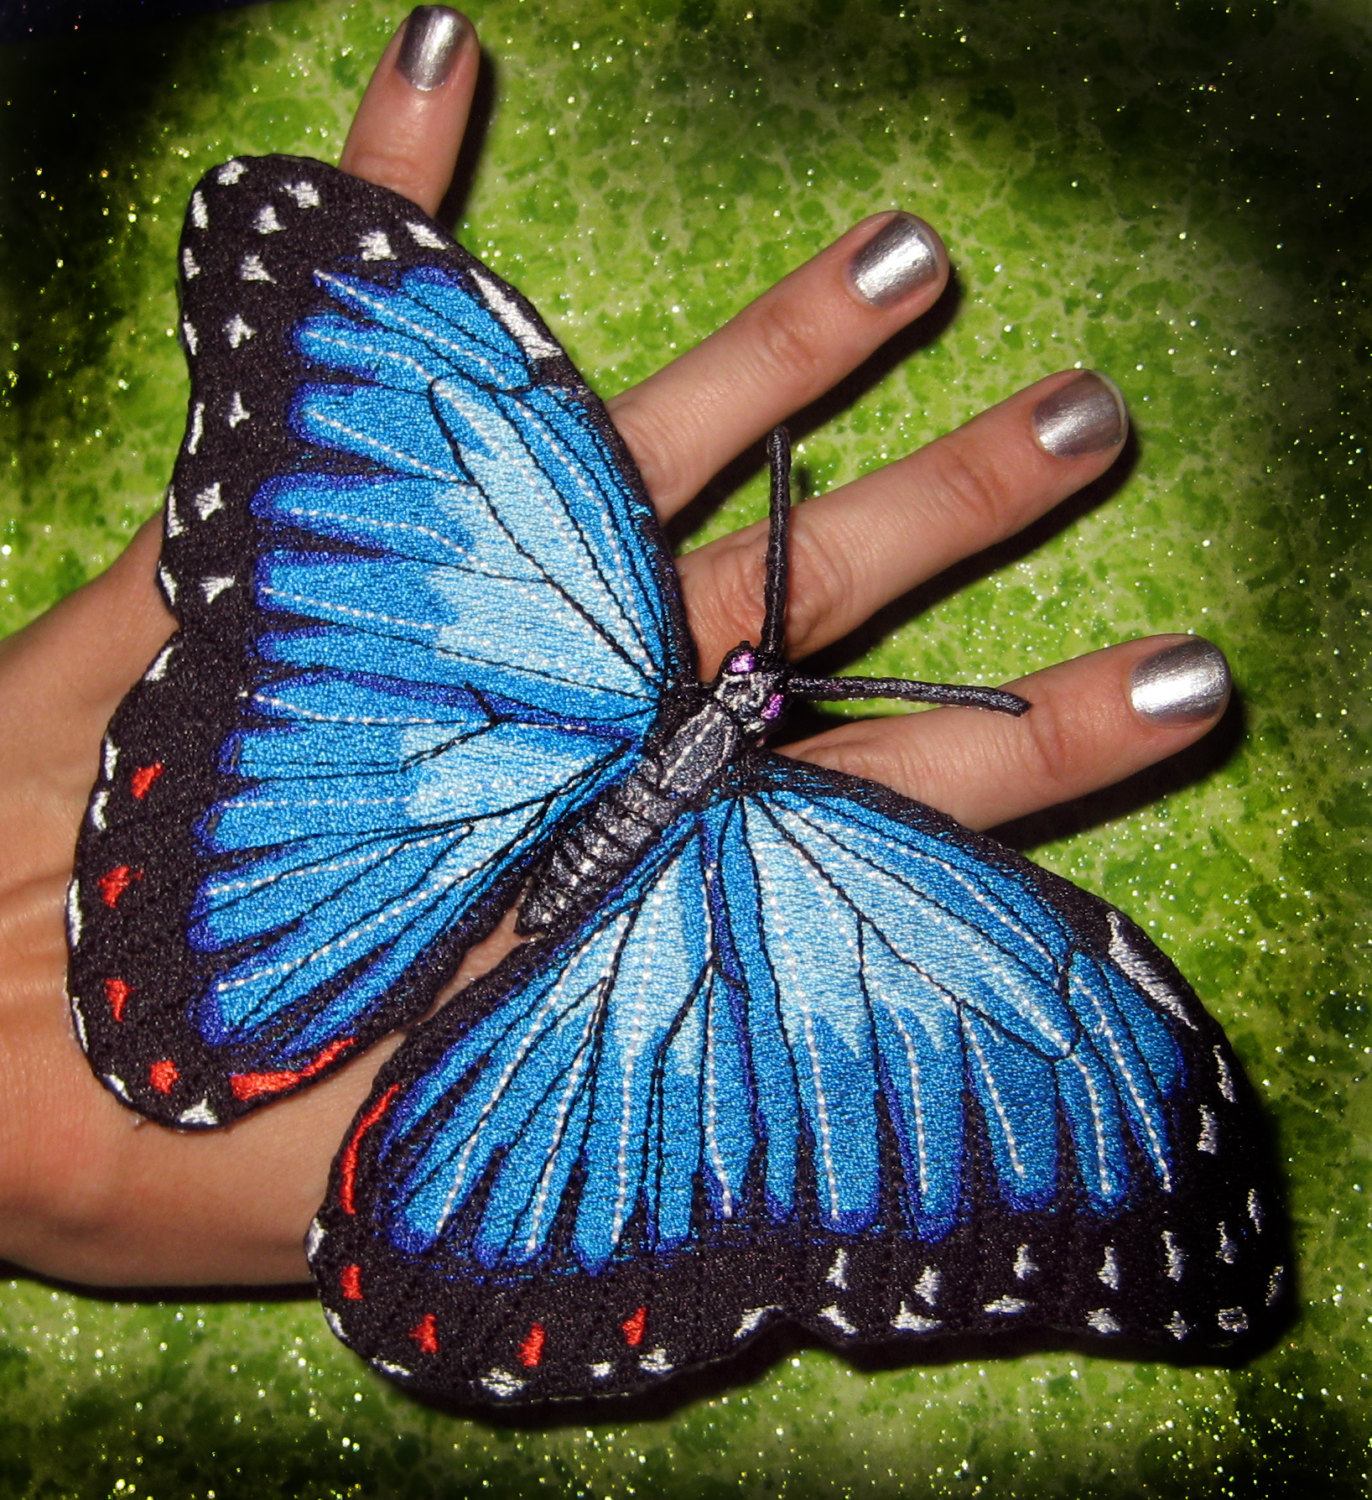 Epic Life Sized Blue Morpho Butterfly by SpiderStitchesParlor.